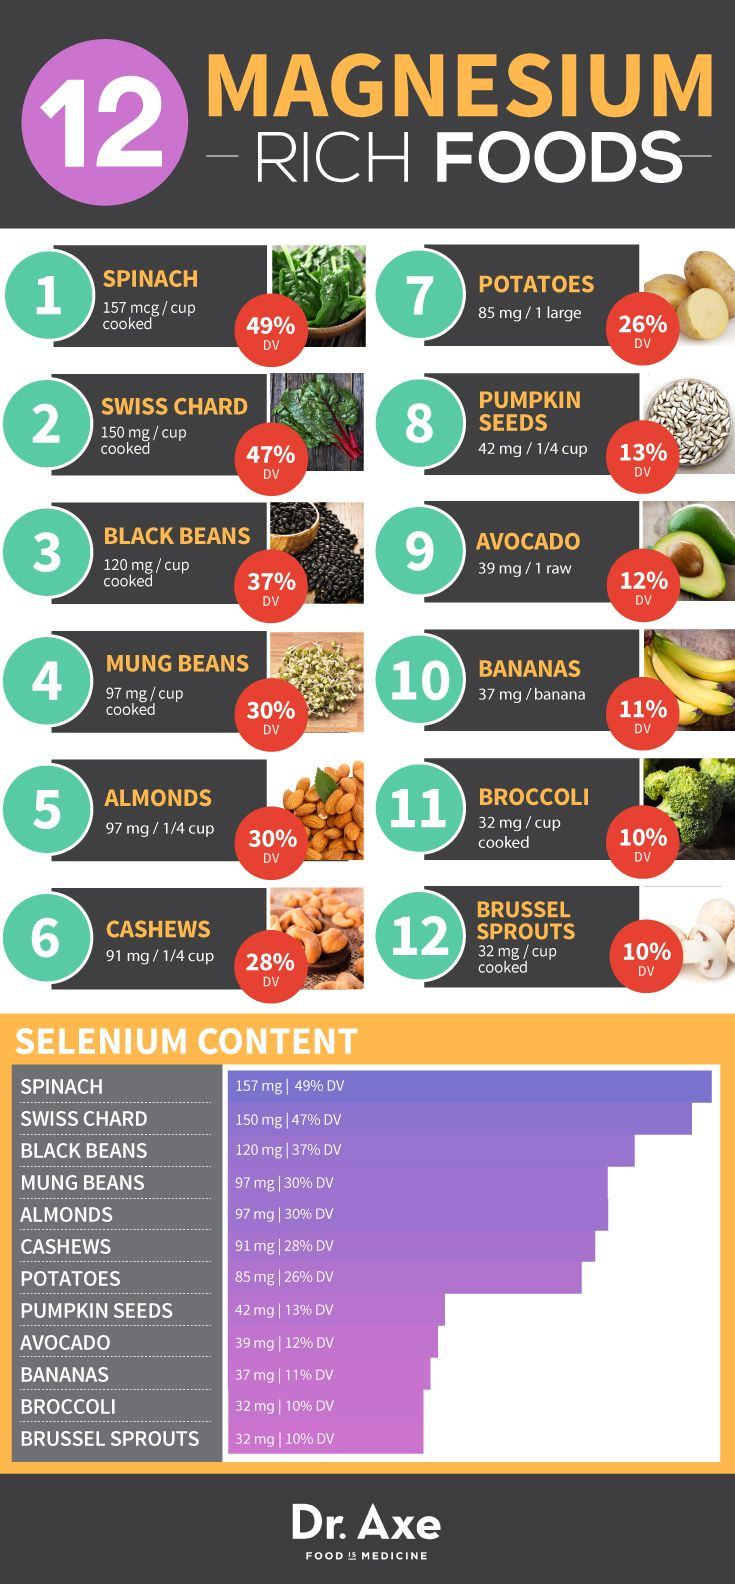 Magnesium rich foods to prevent Mg deficiency.